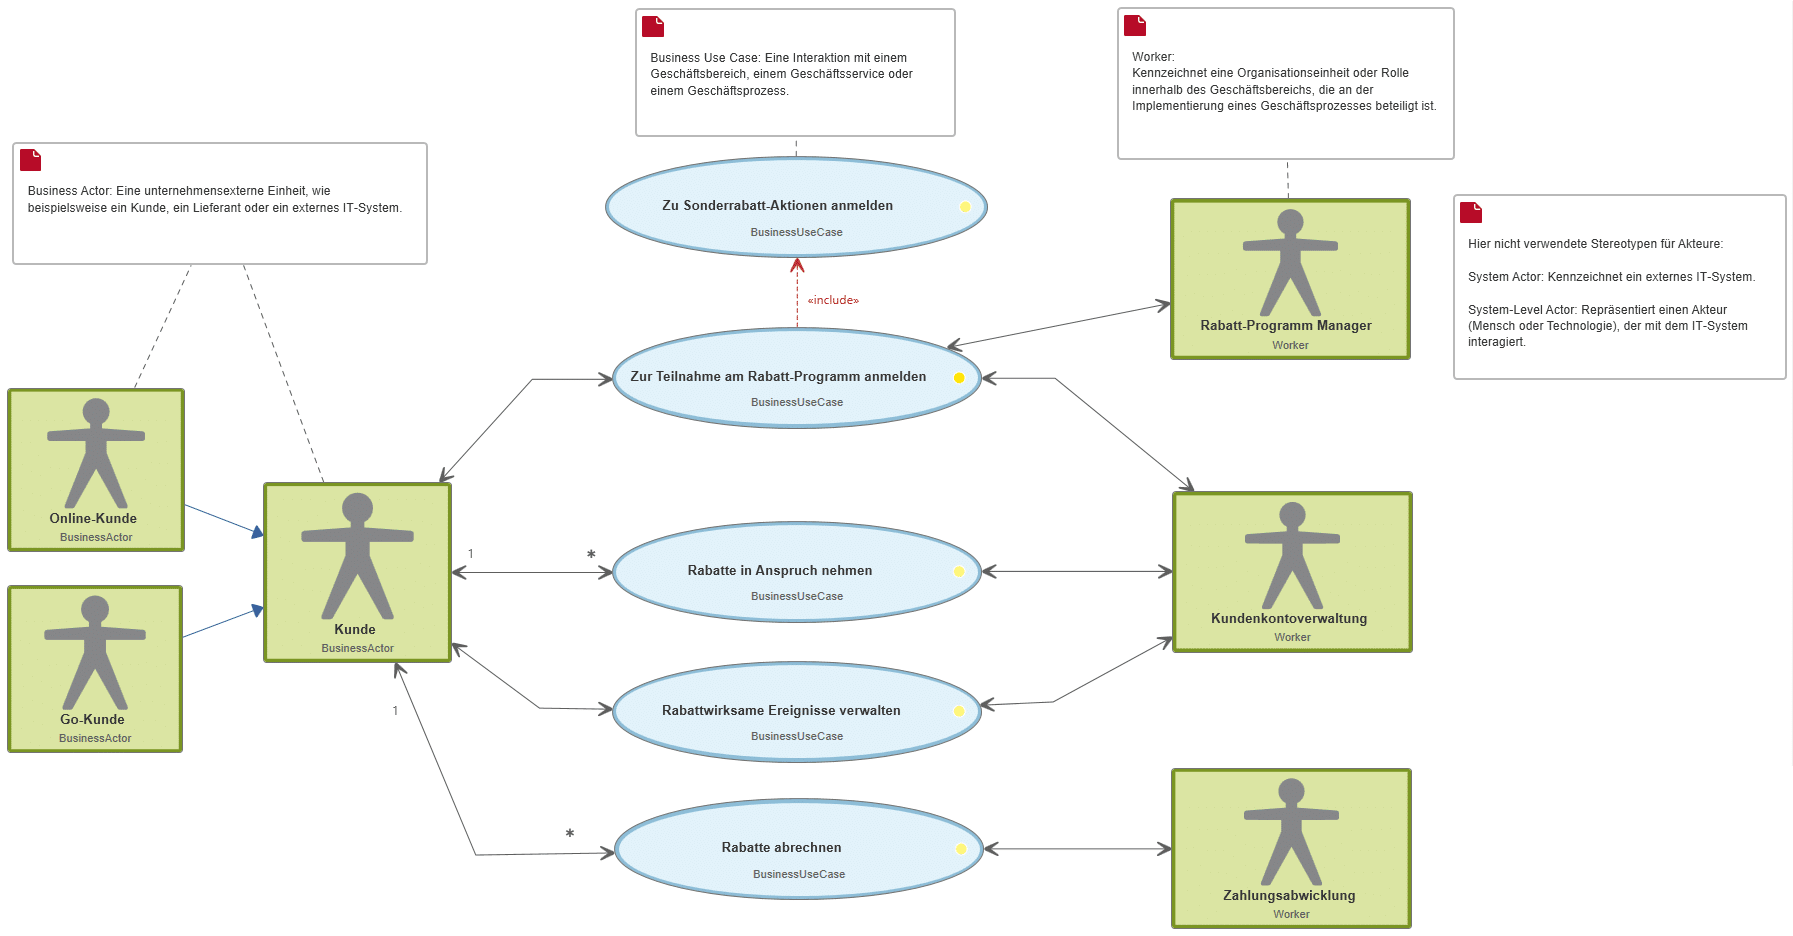 Business Use Case Diagramm